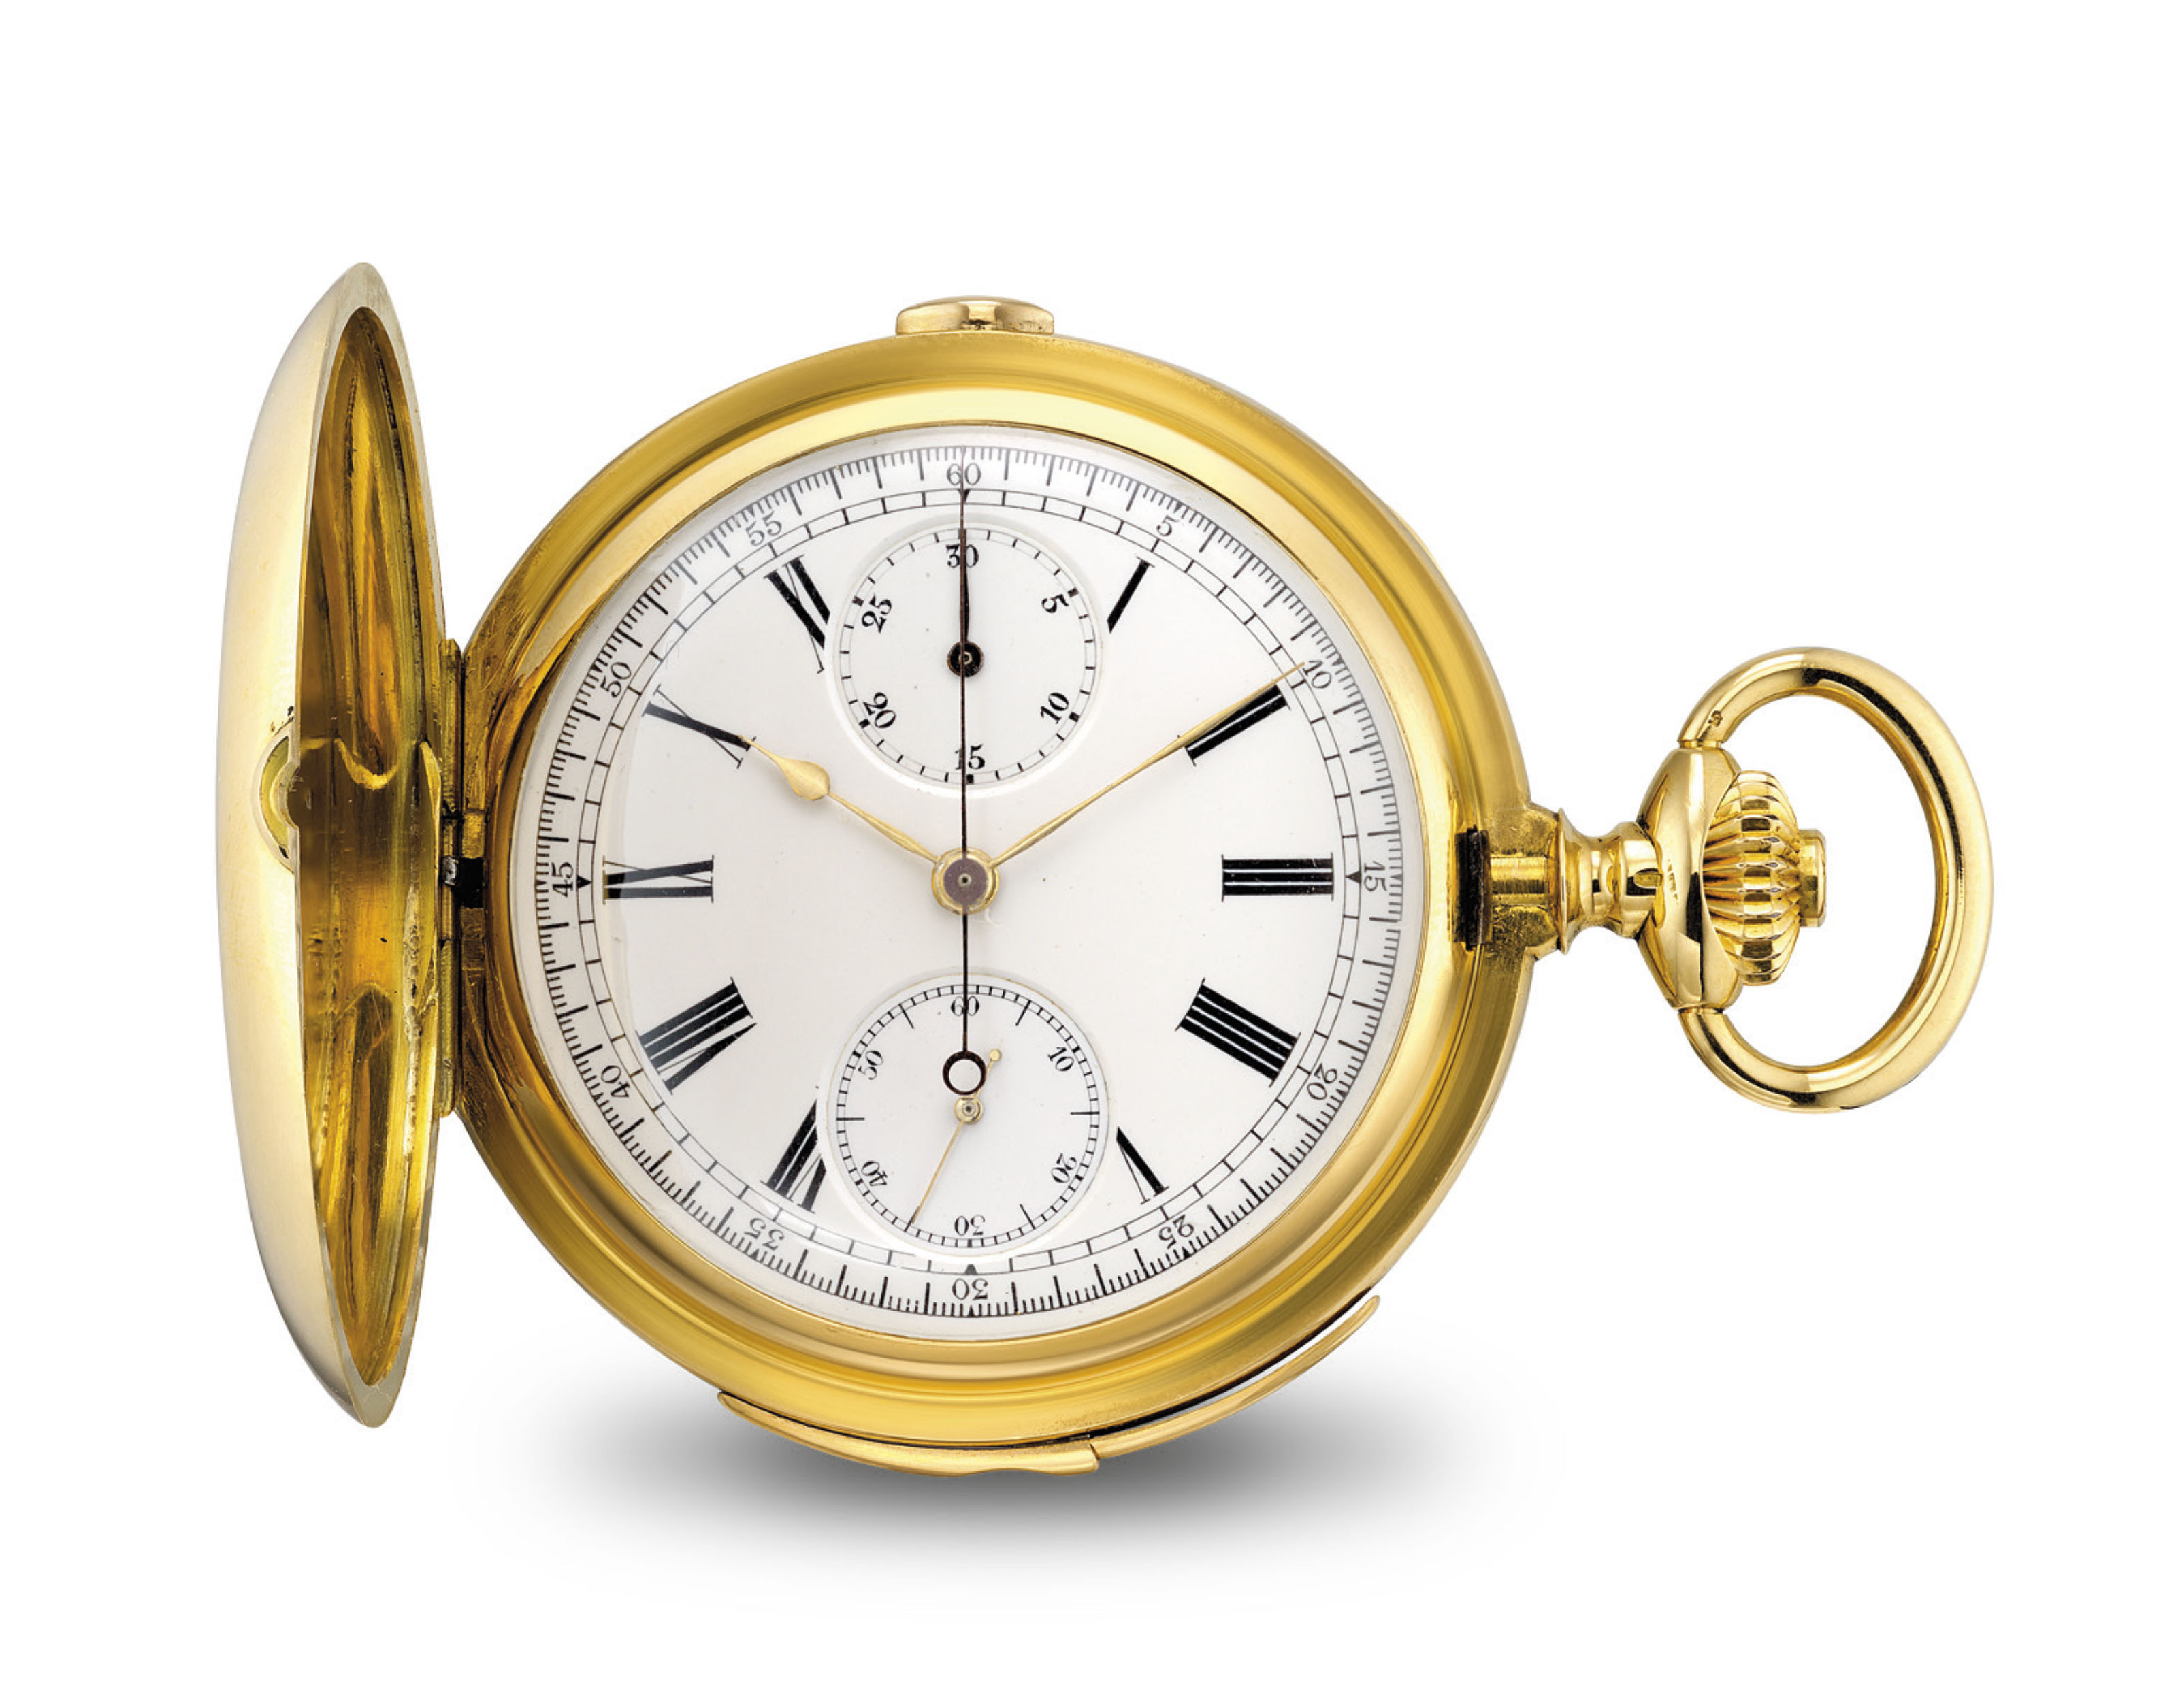 UTI. AN 18K GOLD HUNTER CASE MINUTE REPEATING CHRONOGRAPH KEYLESS LEVER WATCH